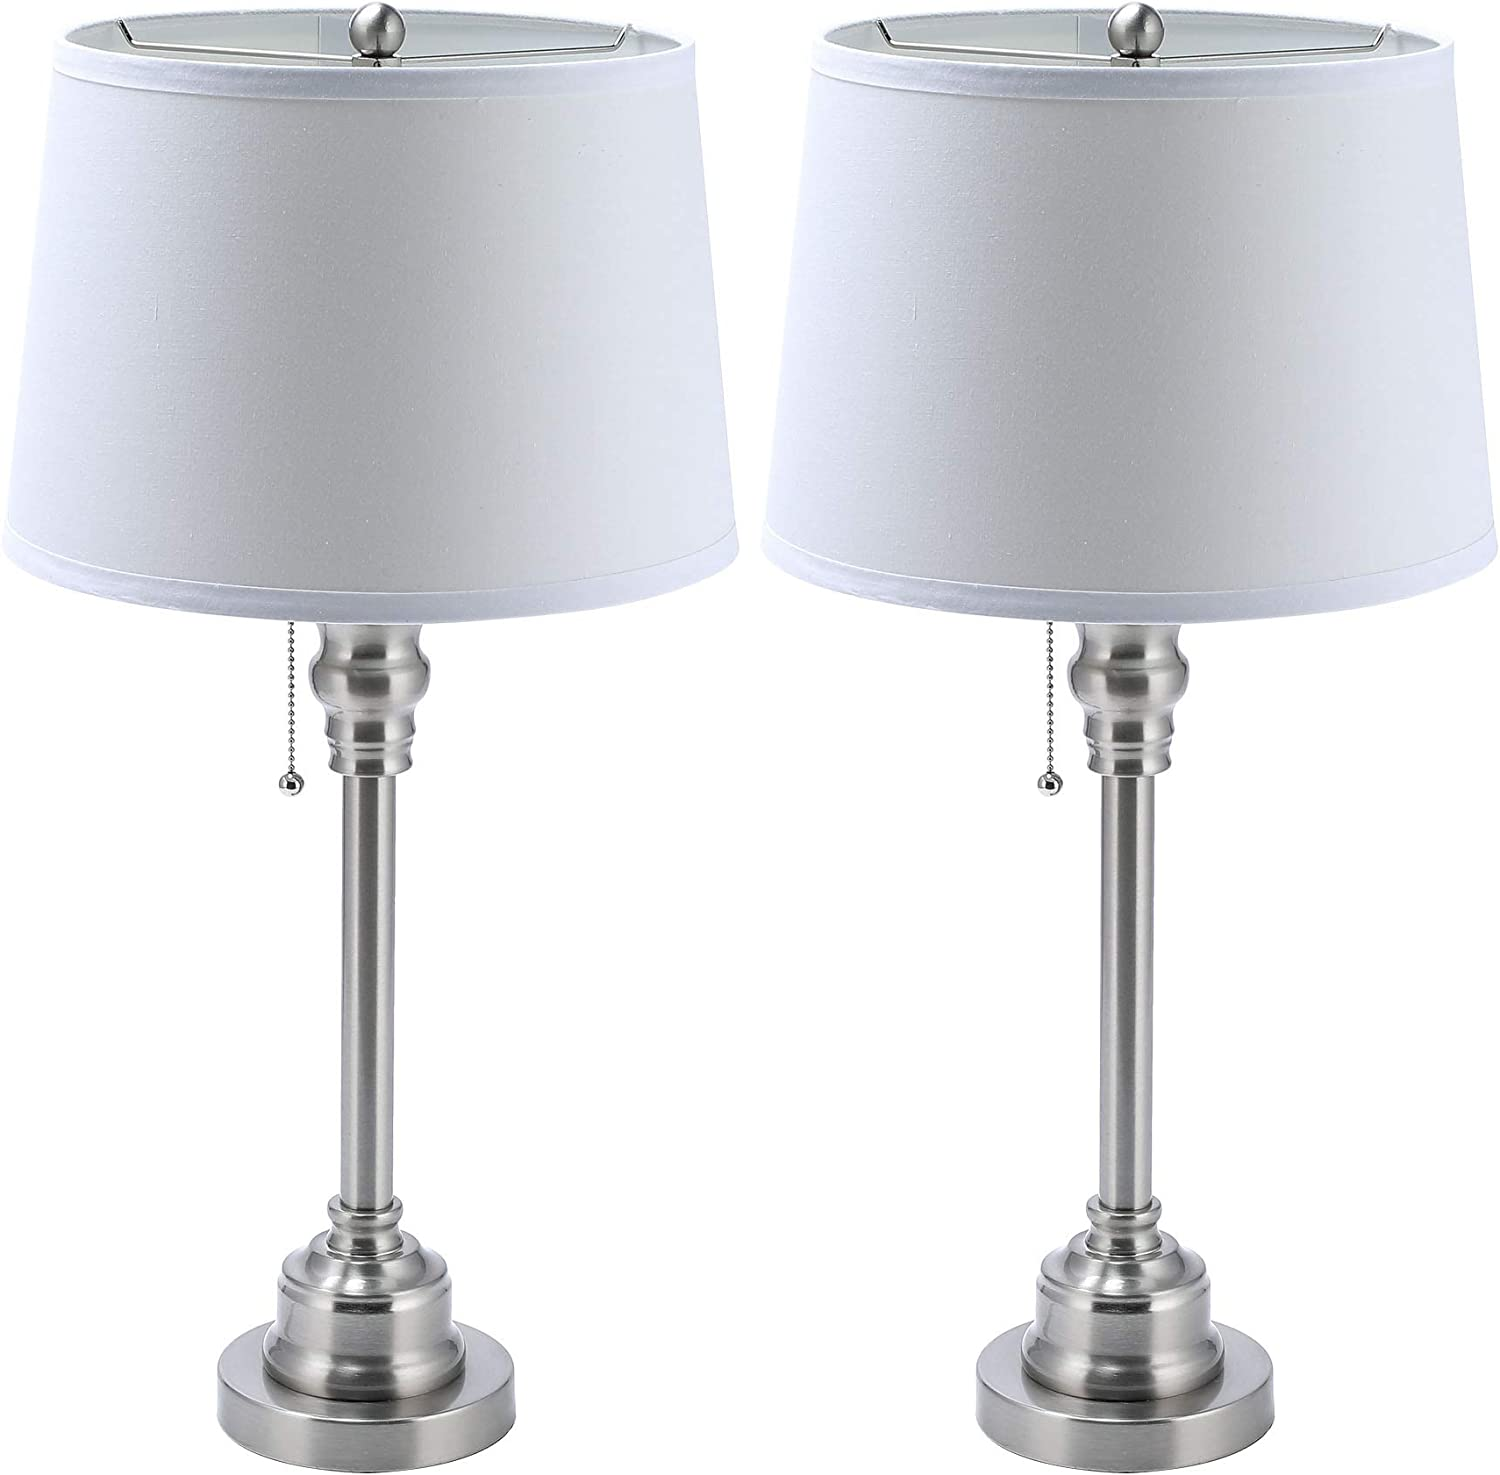 Co Z White Table Lamp Set Of 2 Modern Metal Desk Lamp In Brushed Steel Finish 26 Inches In Height Bedside Lamps For Office Bedroom Nightstand Accent Etl Table Lamp Set Of